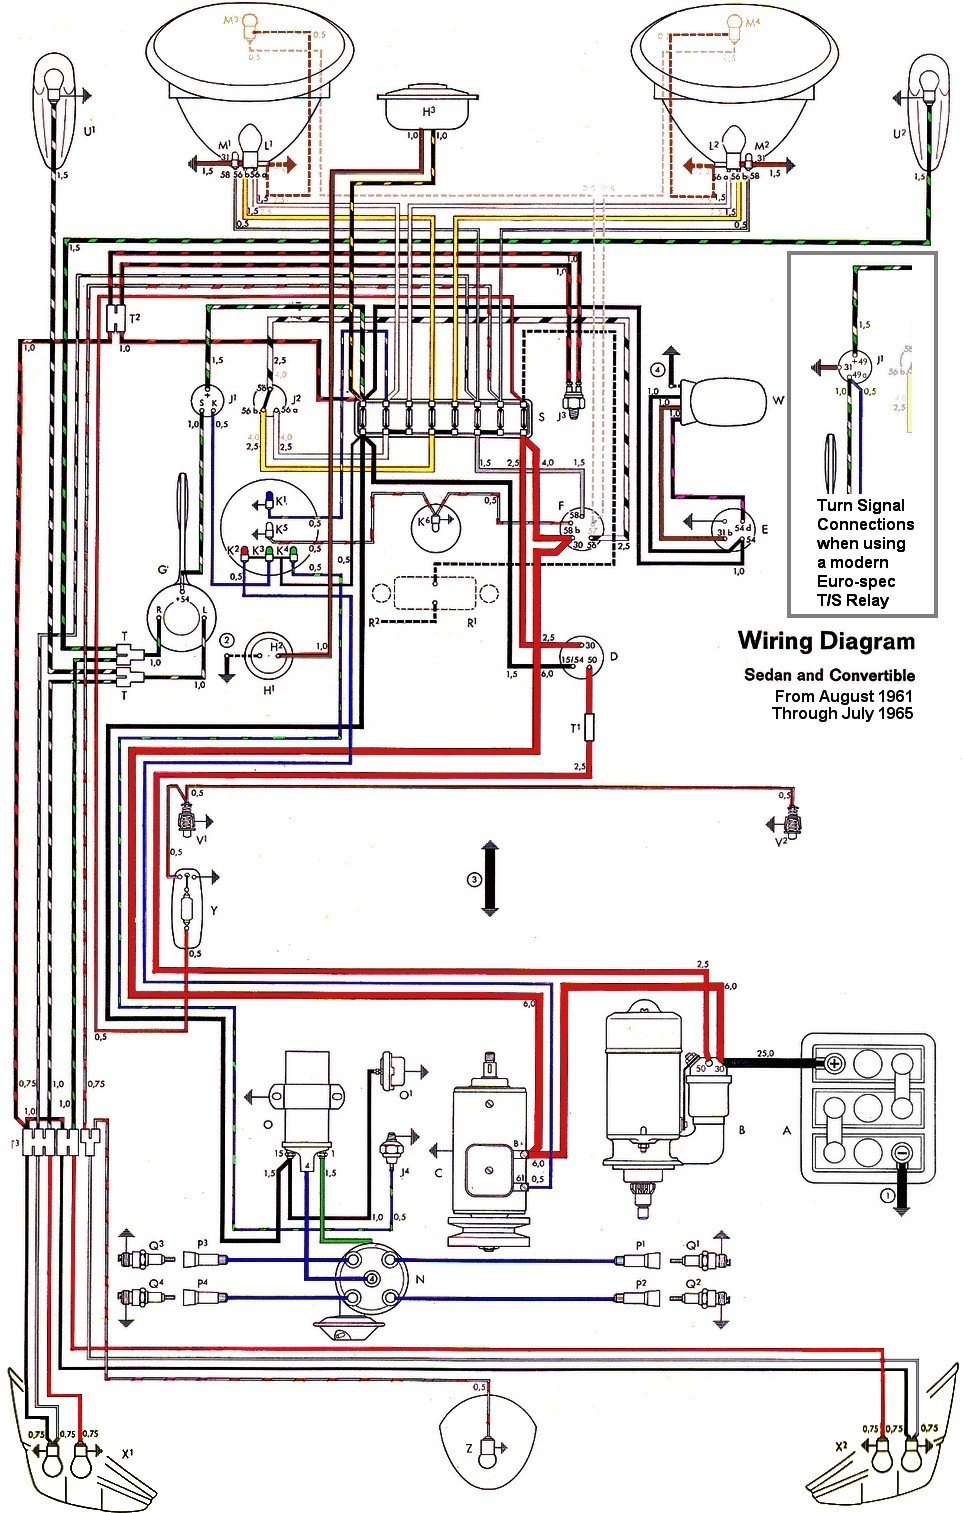 1971 vw beetle wiring diagram 1972 vw beetle wiring diagram wiring 1969 volkswagen beetle wiring diagram thesamba com type 1 wiring diagrams